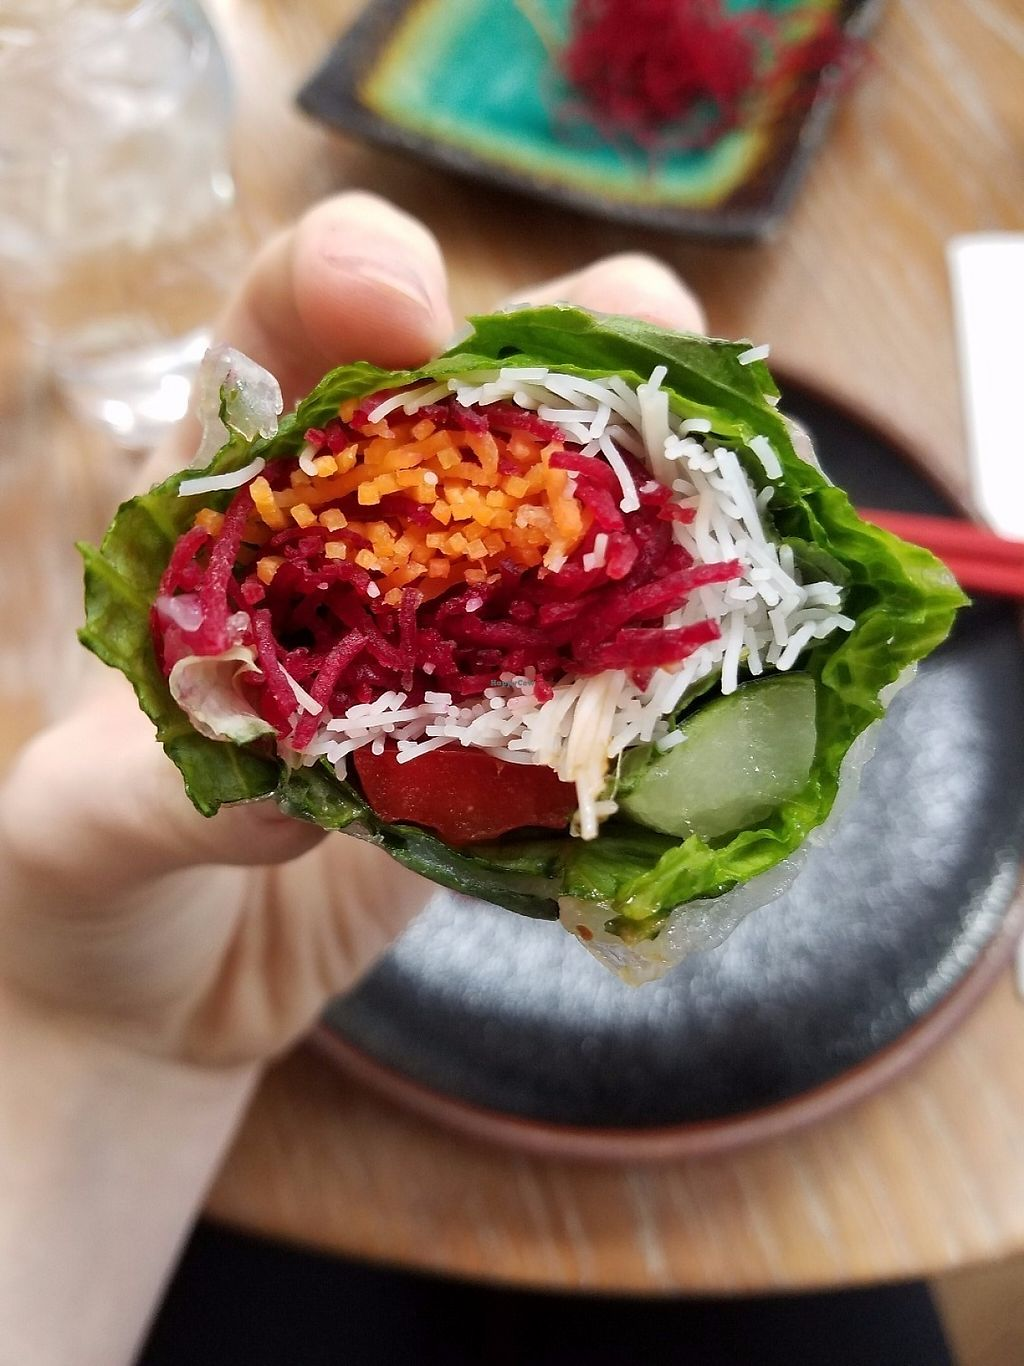 """Photo of DC Noodles  by <a href=""""/members/profile/MerryRose"""">MerryRose</a> <br/>Inside view of the veggie rolls; rice paper wrapping, greens wrapping, filled with carrot, noodles, and spiralized beetroot <br/> May 11, 2017  - <a href='/contact/abuse/image/92005/257888'>Report</a>"""